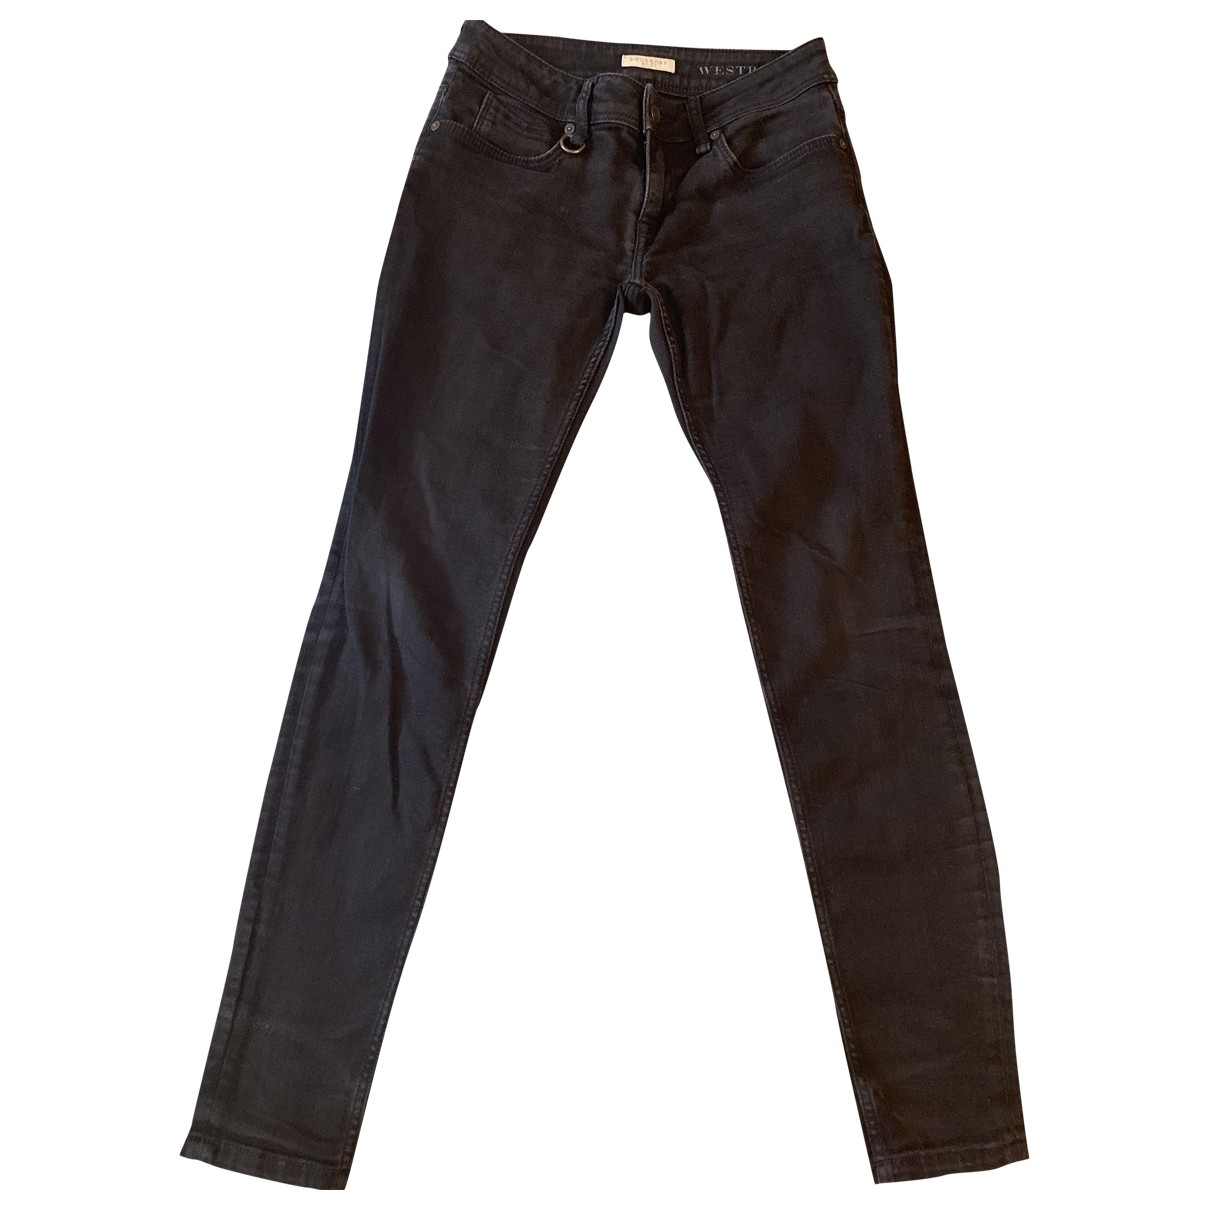 Burberry \N Anthracite Denim - Jeans Jeans for Women 26 US